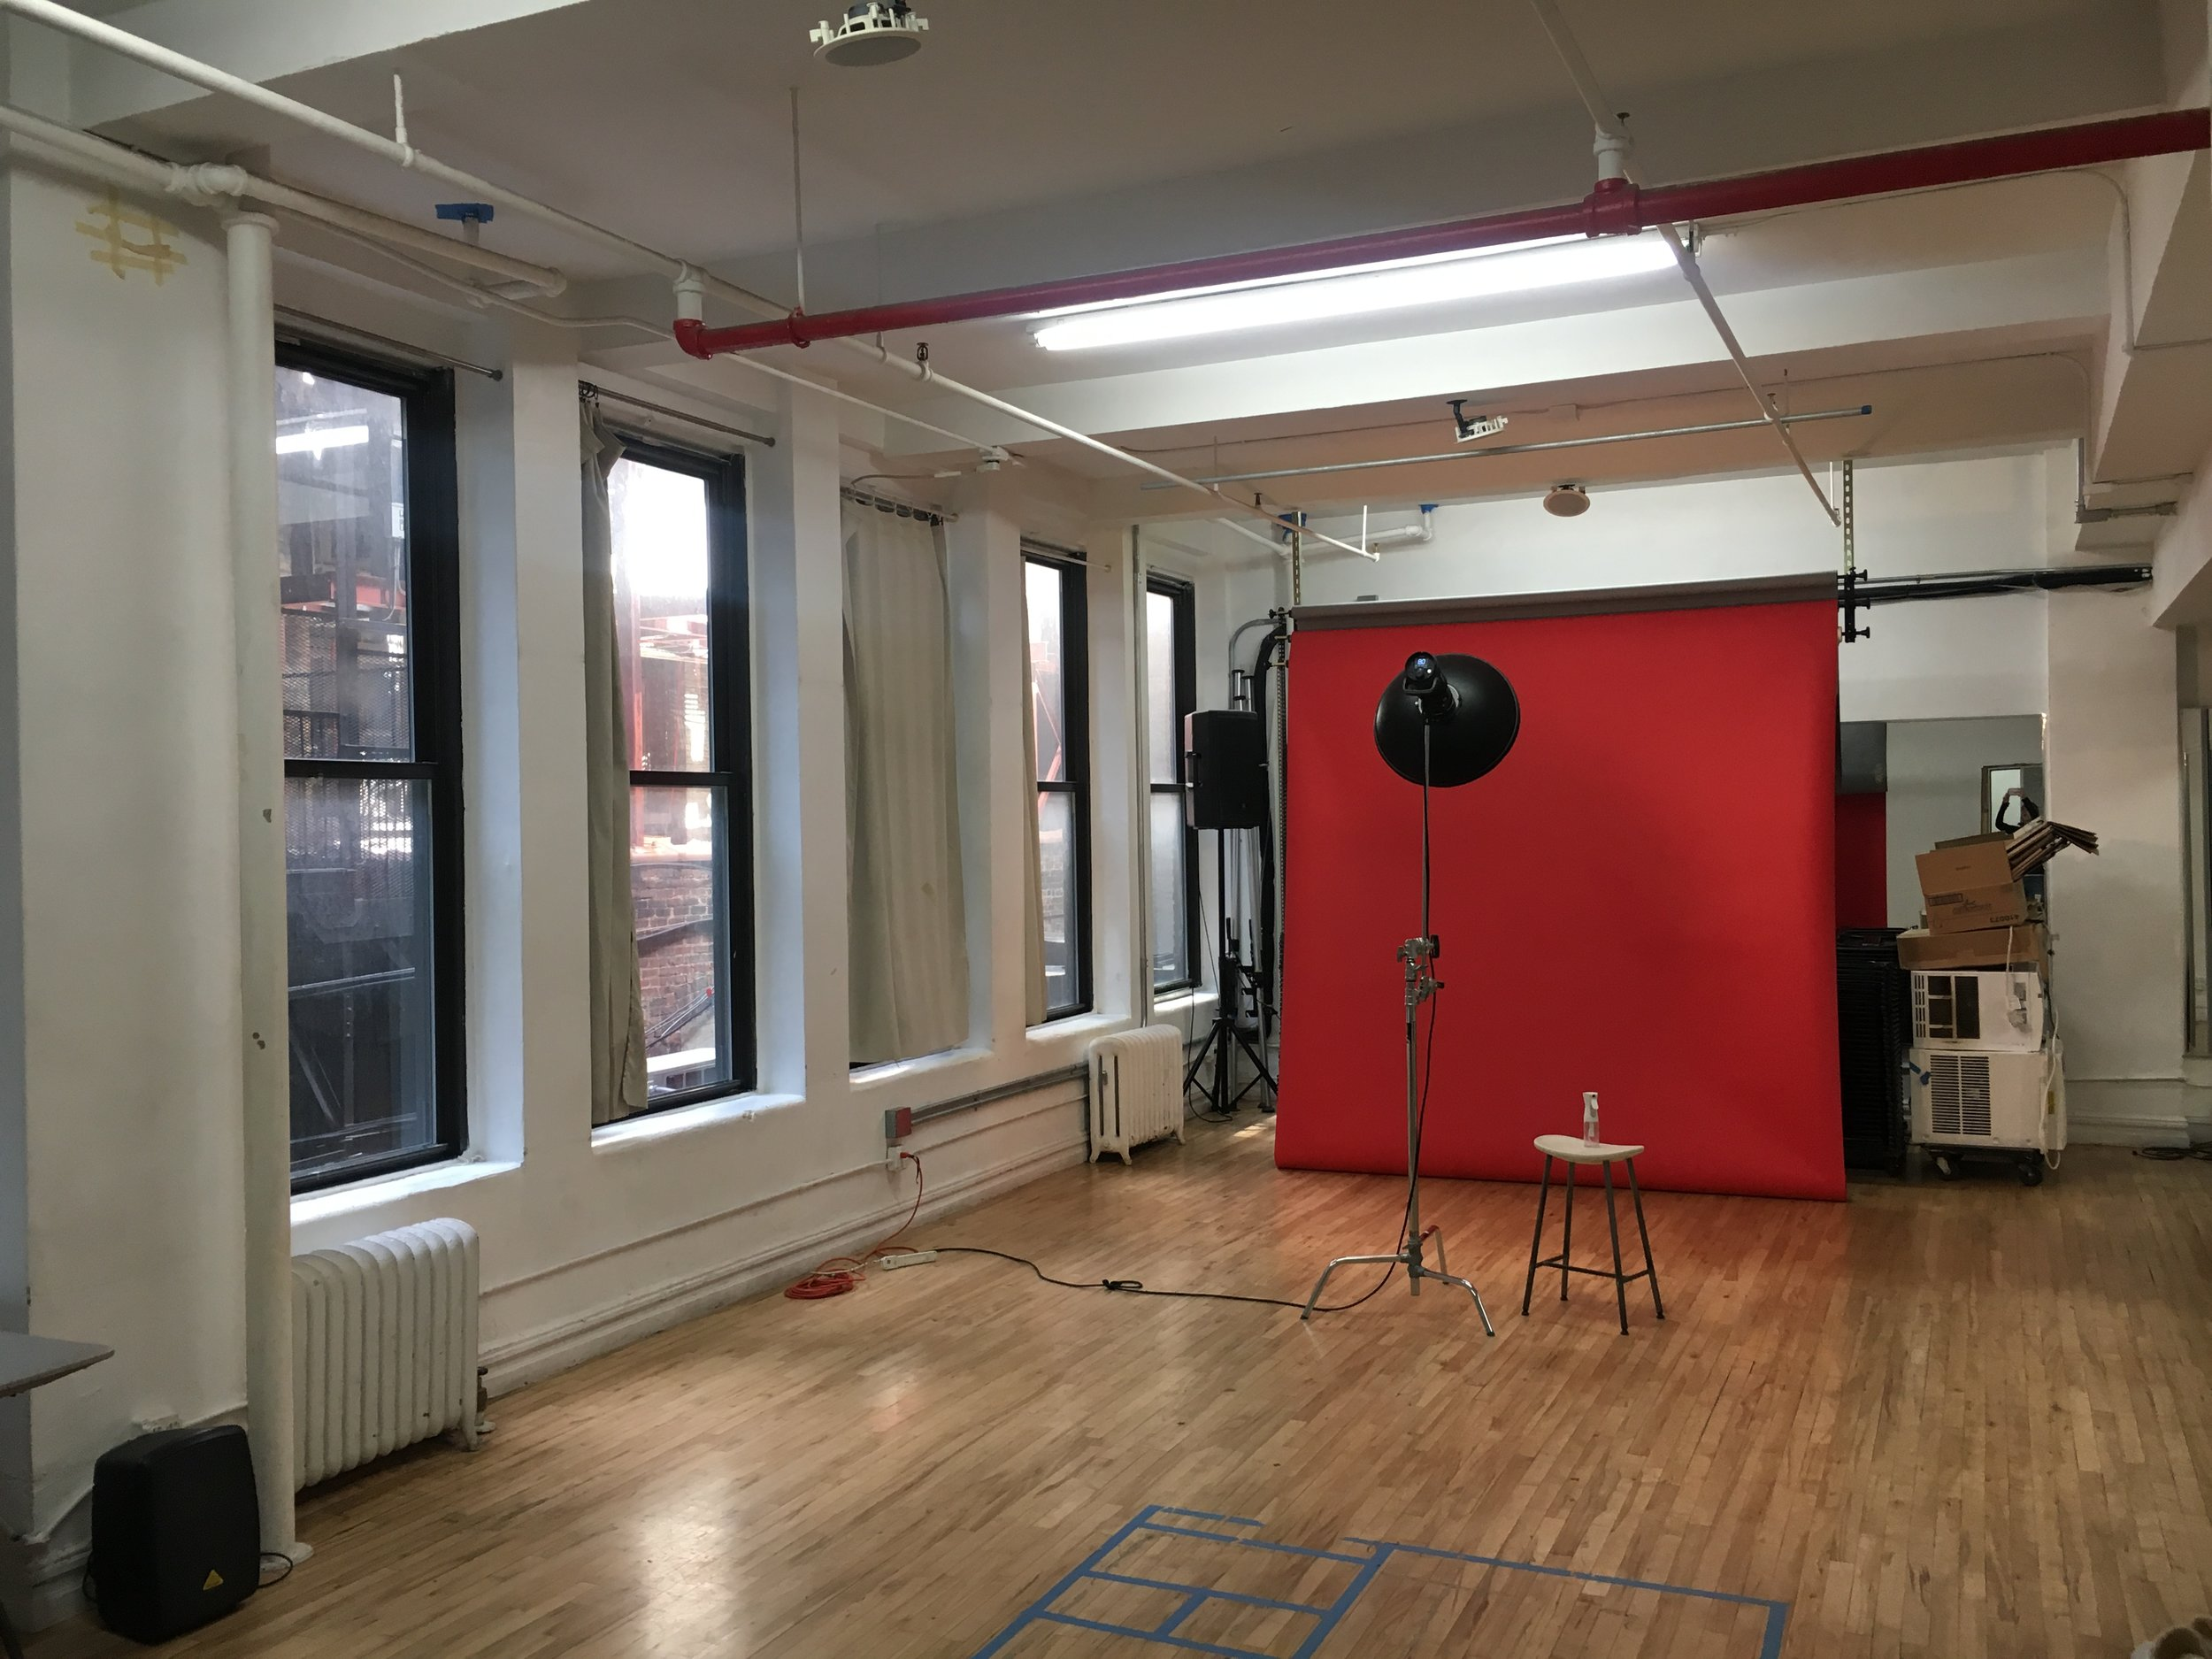 STUDIO 4 - Photo: $50/hr, $375/day.  Video: $60/hr, $450/day